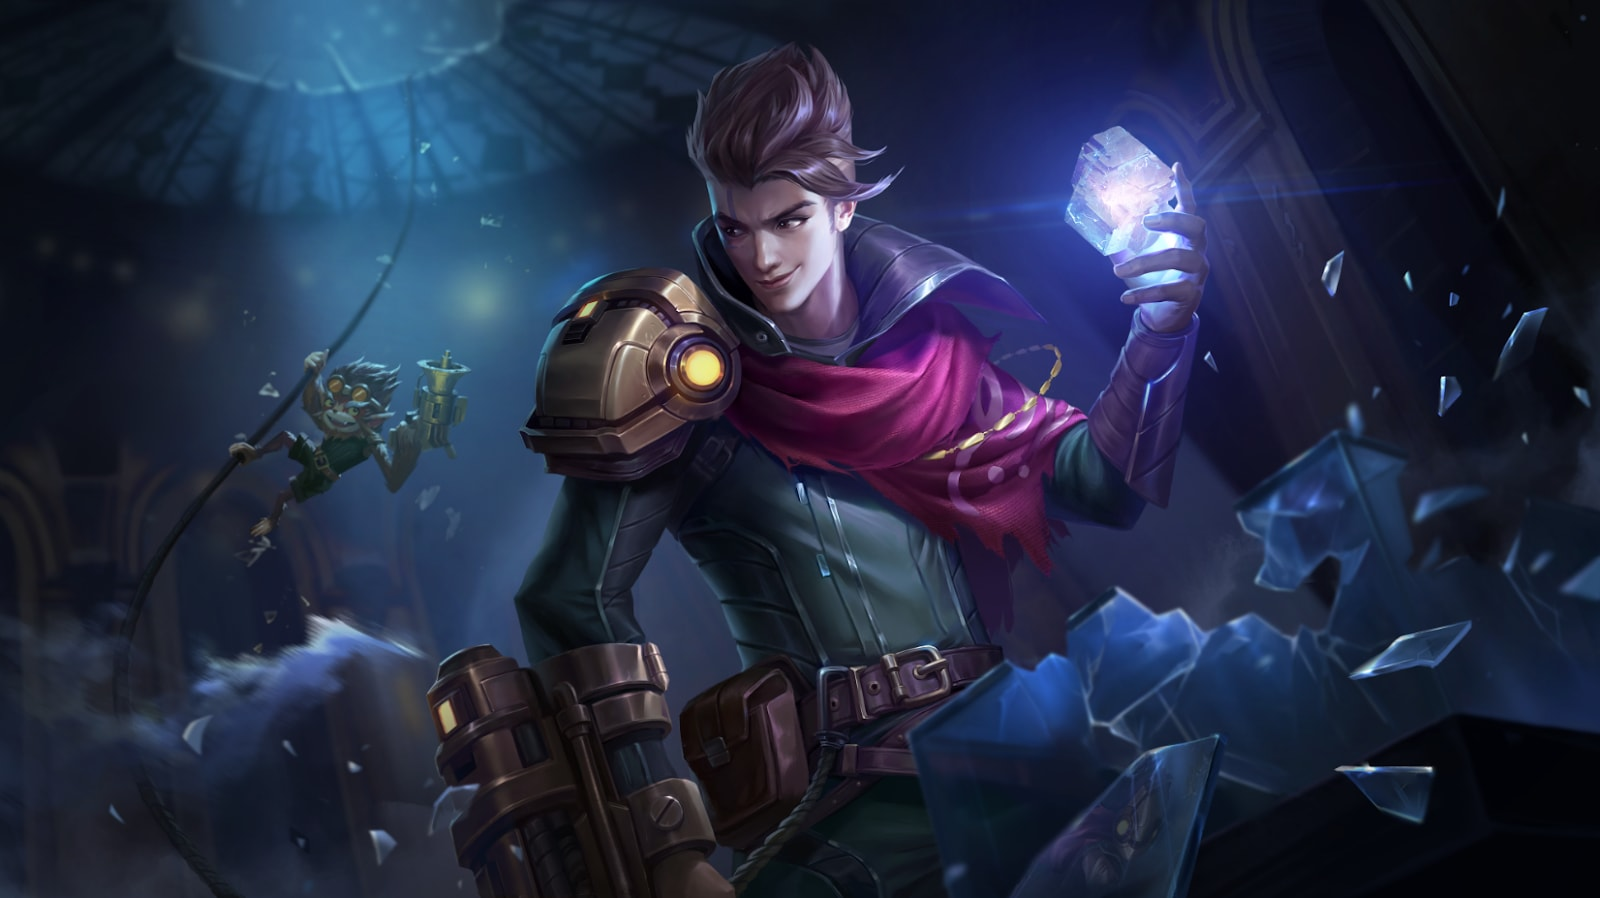 Wallpaper Claude Partners in Crime Skin Mobile Legends HD for PC